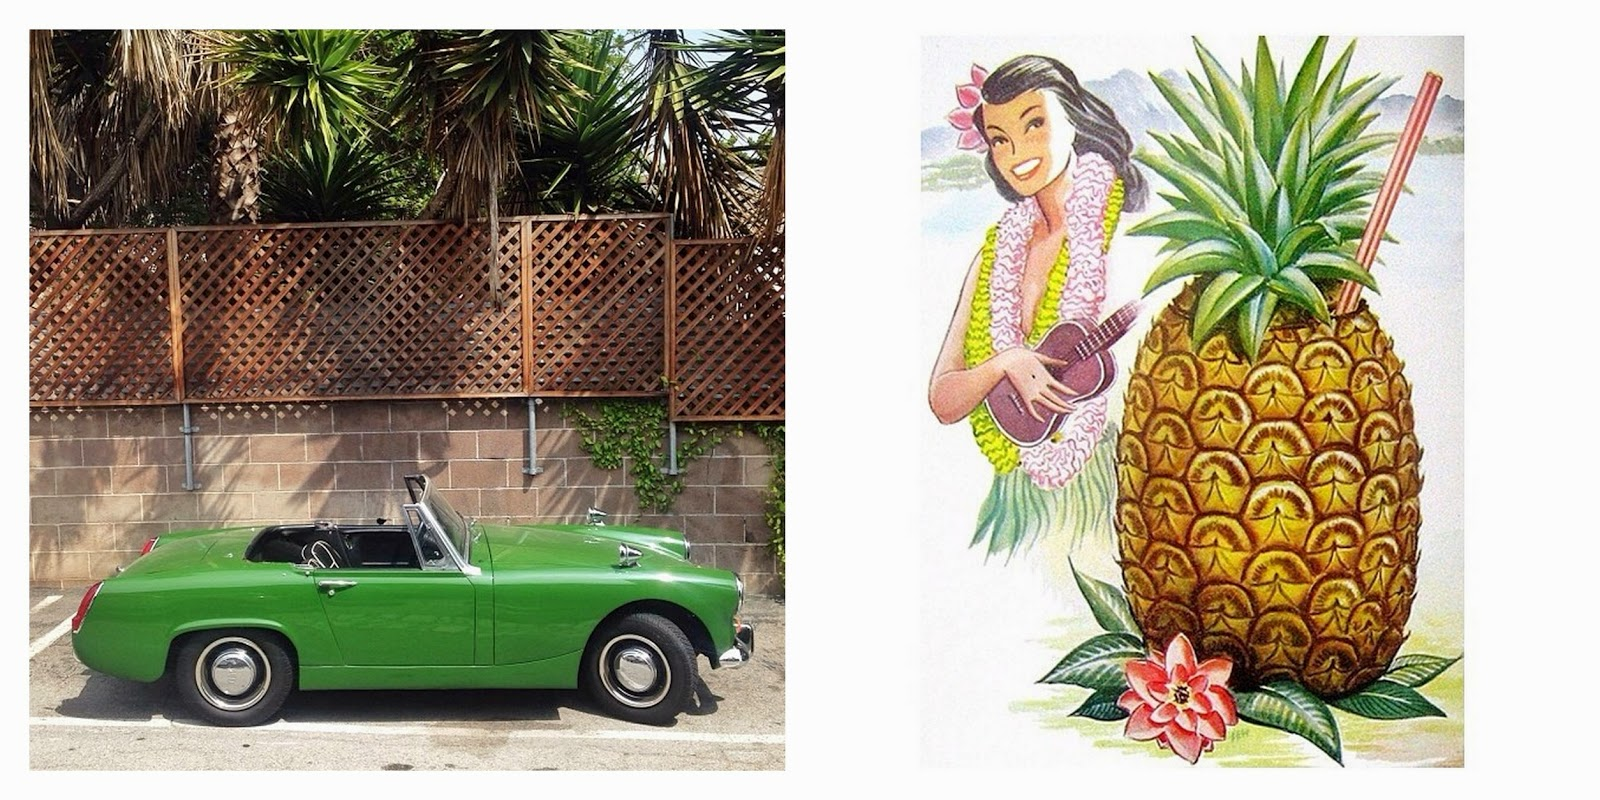 voiture,vintage,car,green,vert,ananas,pineapple,pin up,instagram,ululélé